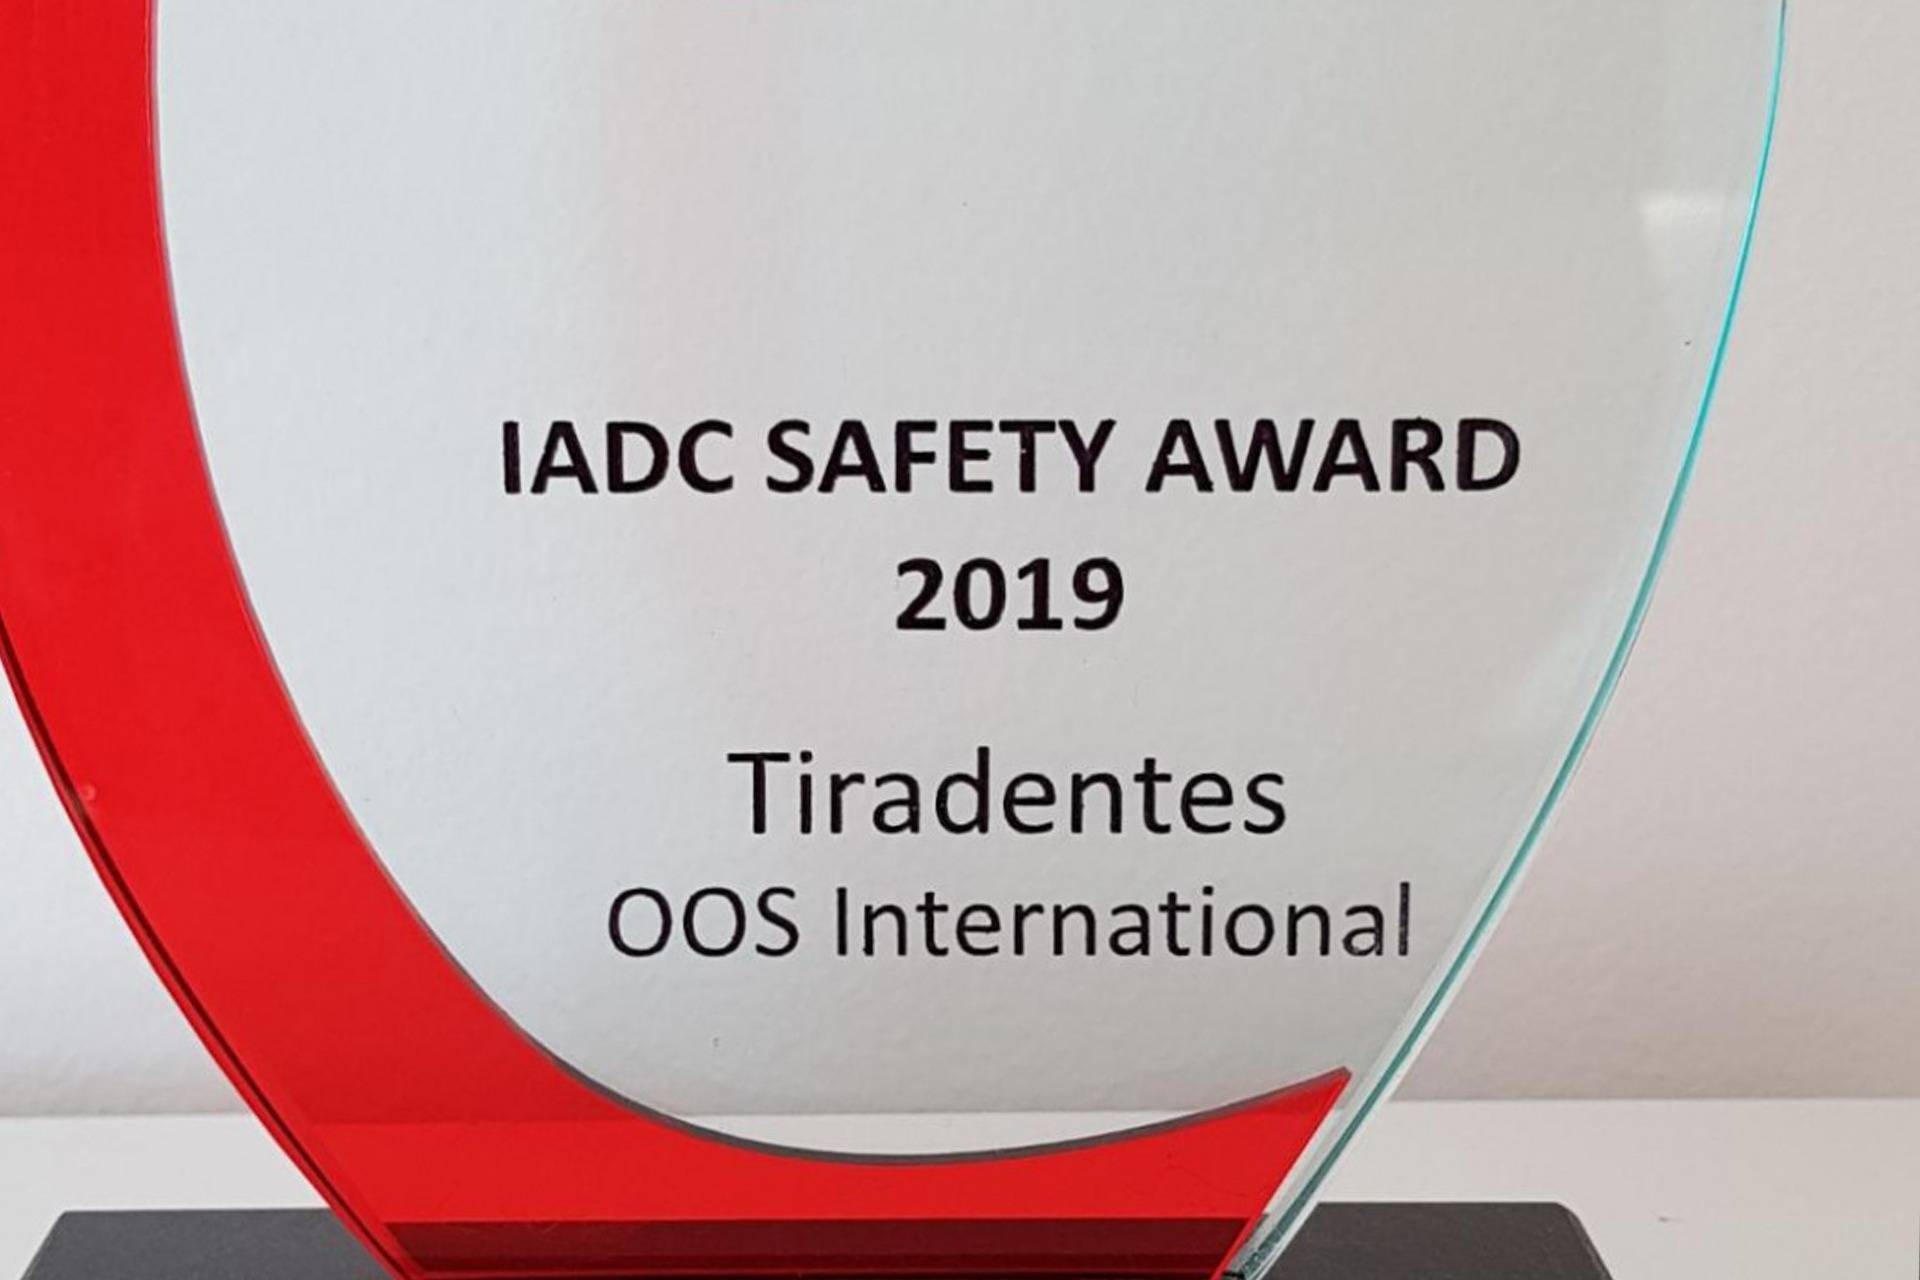 OOS Tiradentes Safety Award 2019